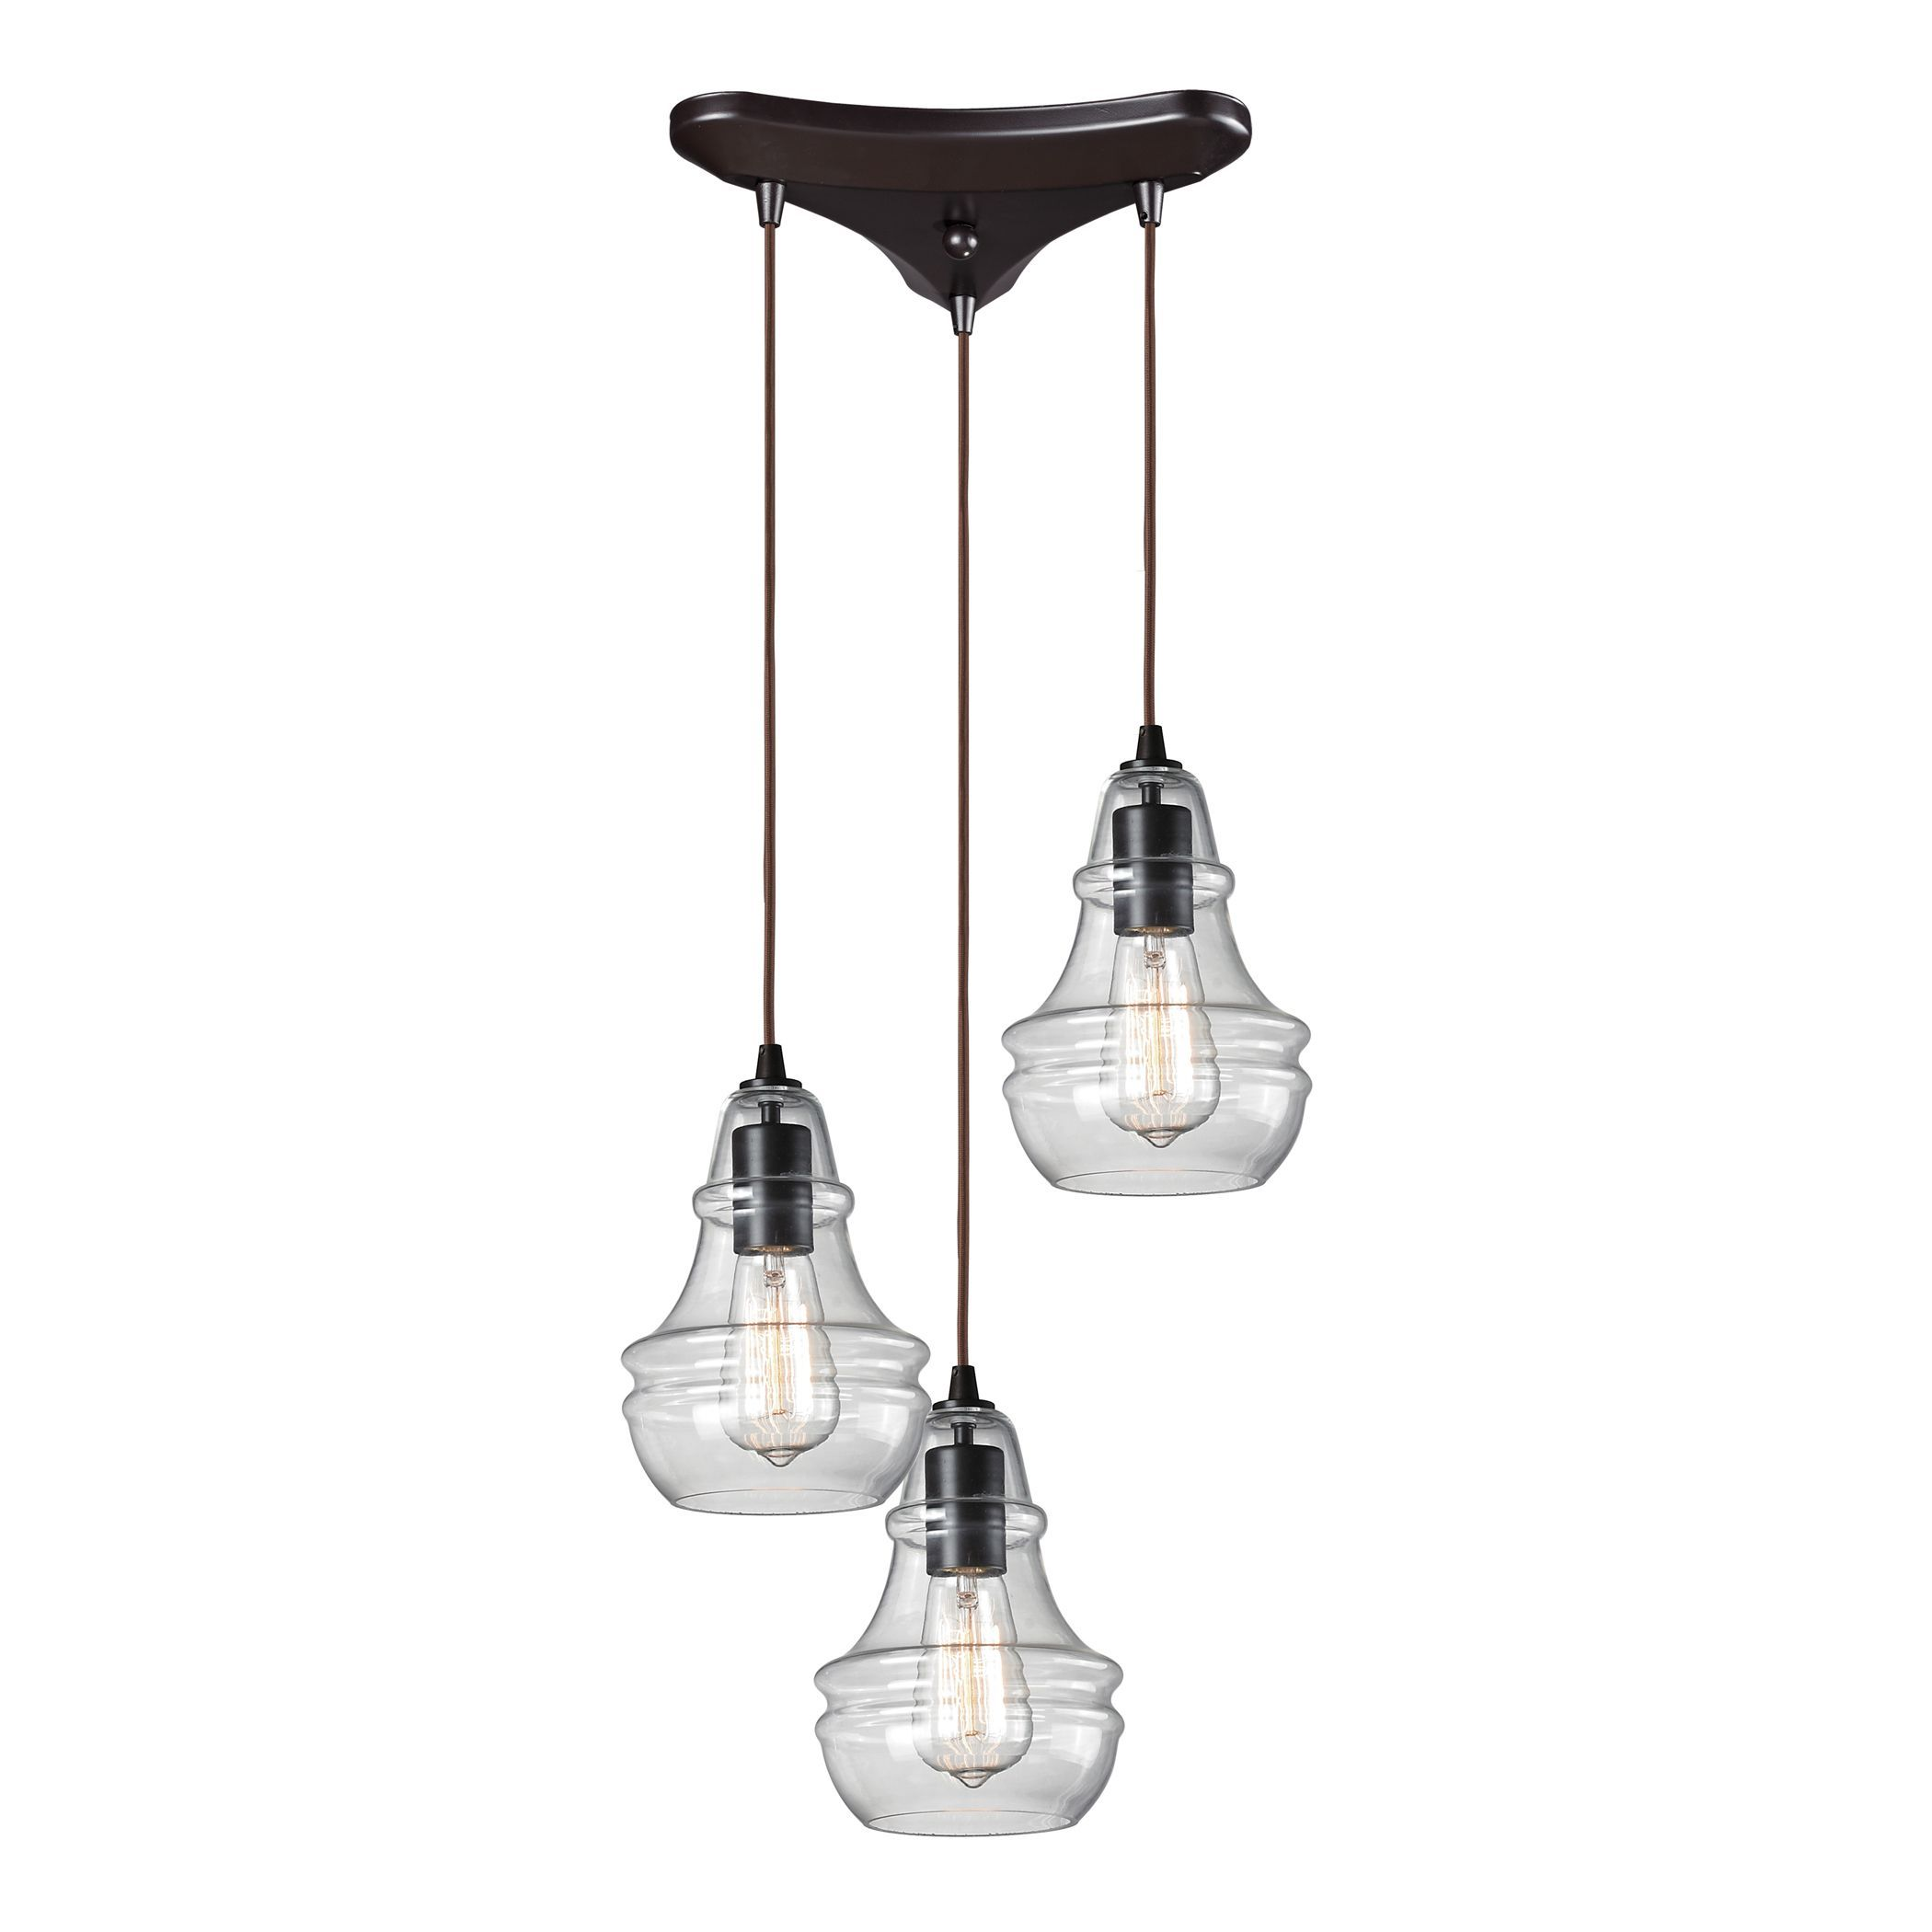 The Menlow Park 3-light pendant showcases a cluster design of three glowing lights each housed in a clear beveled glass shade. Suspended from dark oiled bronze hardware, this handsome pendant will bring simple sophistication to your home.